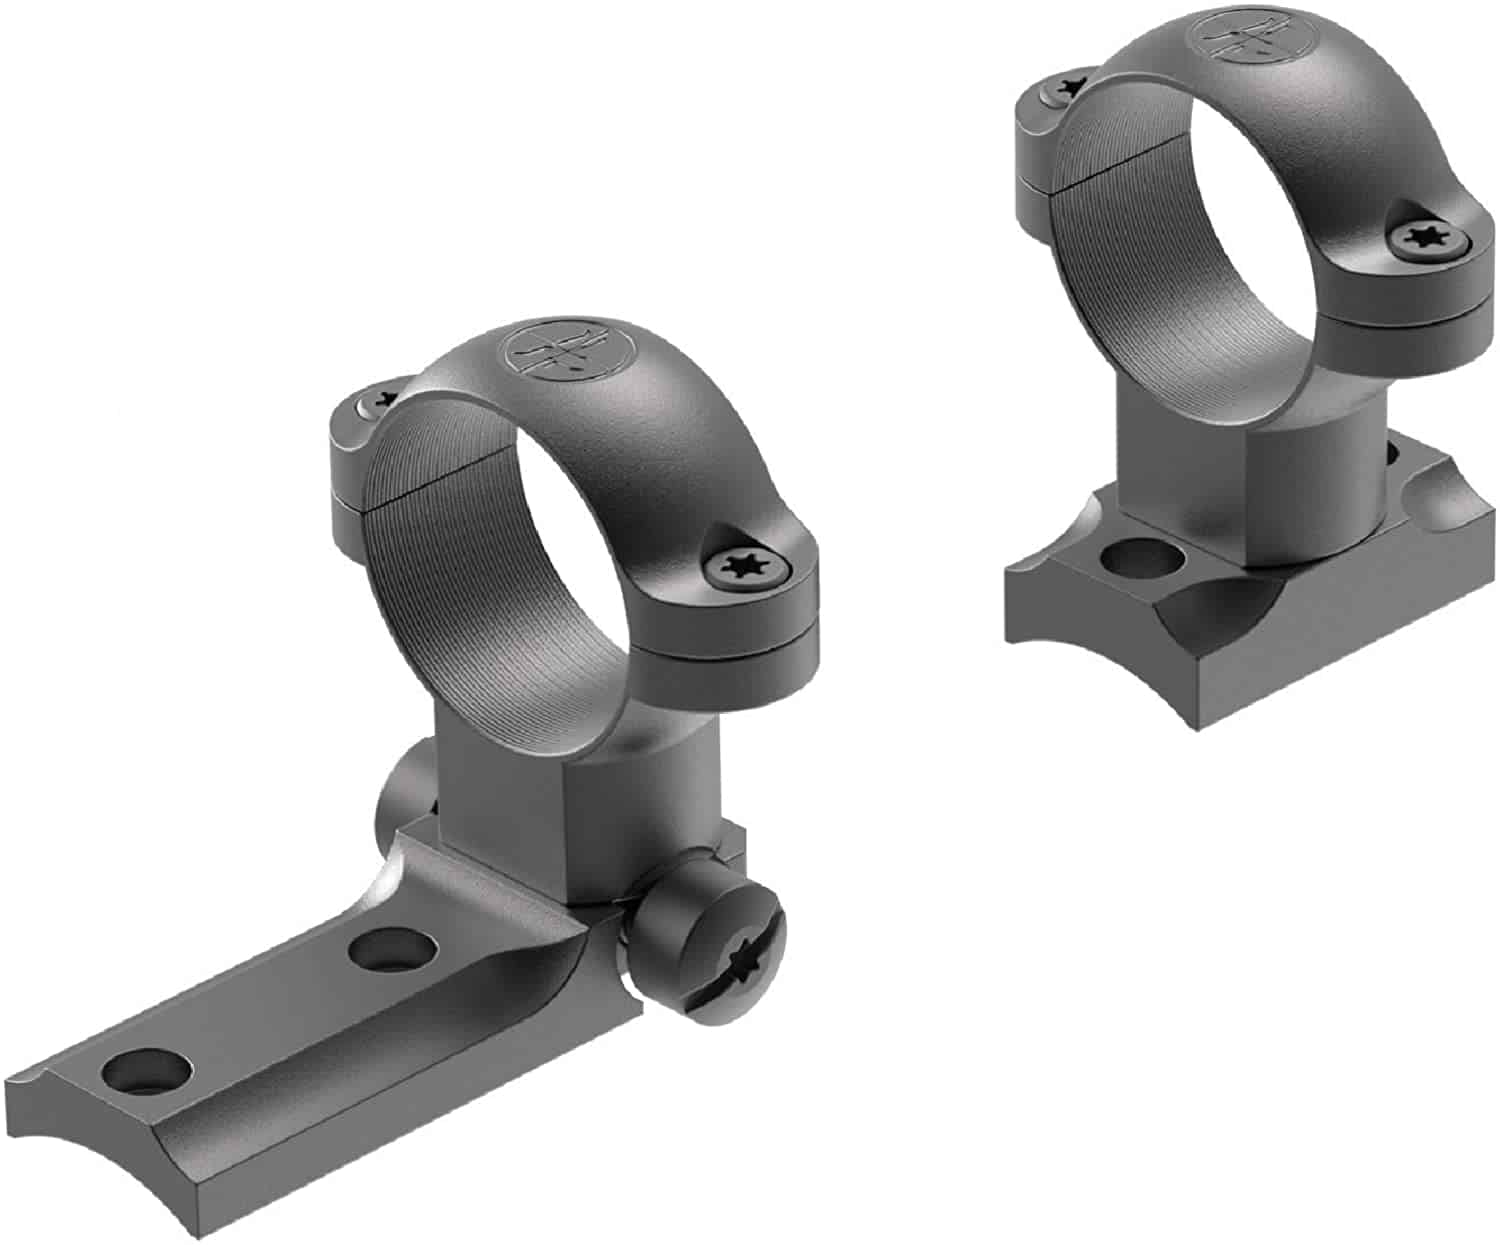 Best Leupold STD scope mount- Leupold Base and Rings Combo Pack